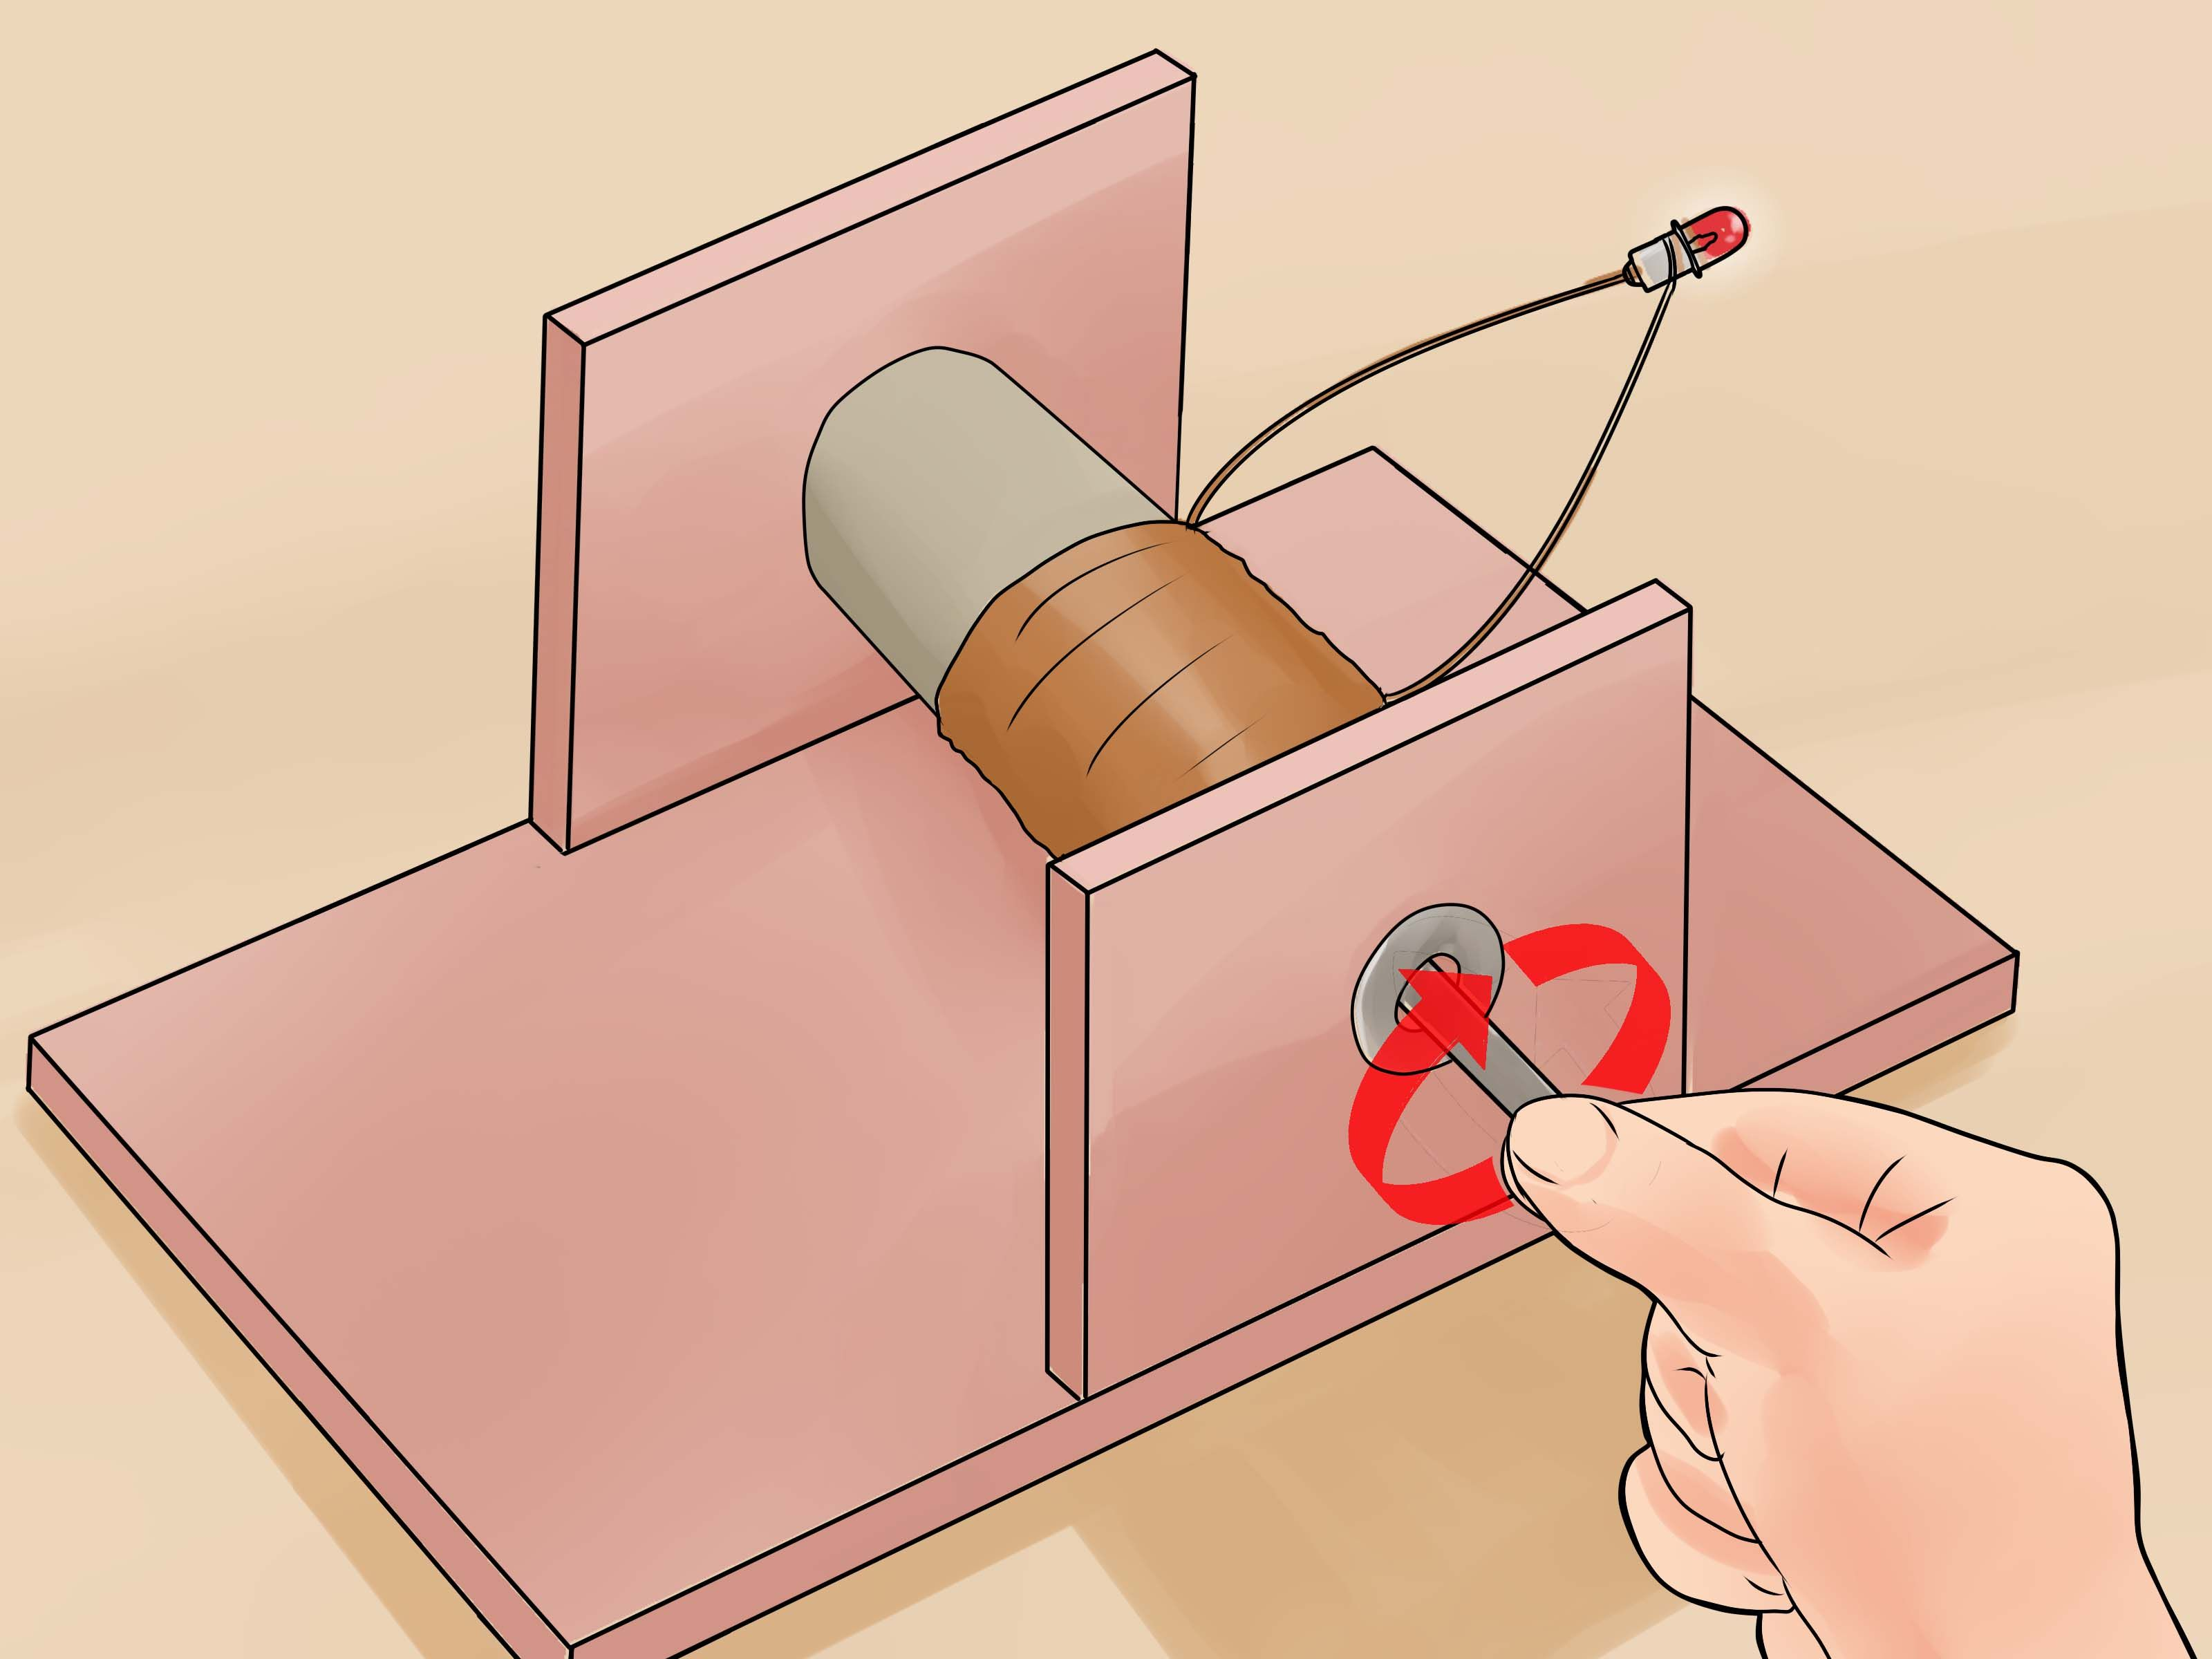 hight resolution of building a simple low powered electric generator can be a fun science fair project or just a workshop experiment for a would be engineer